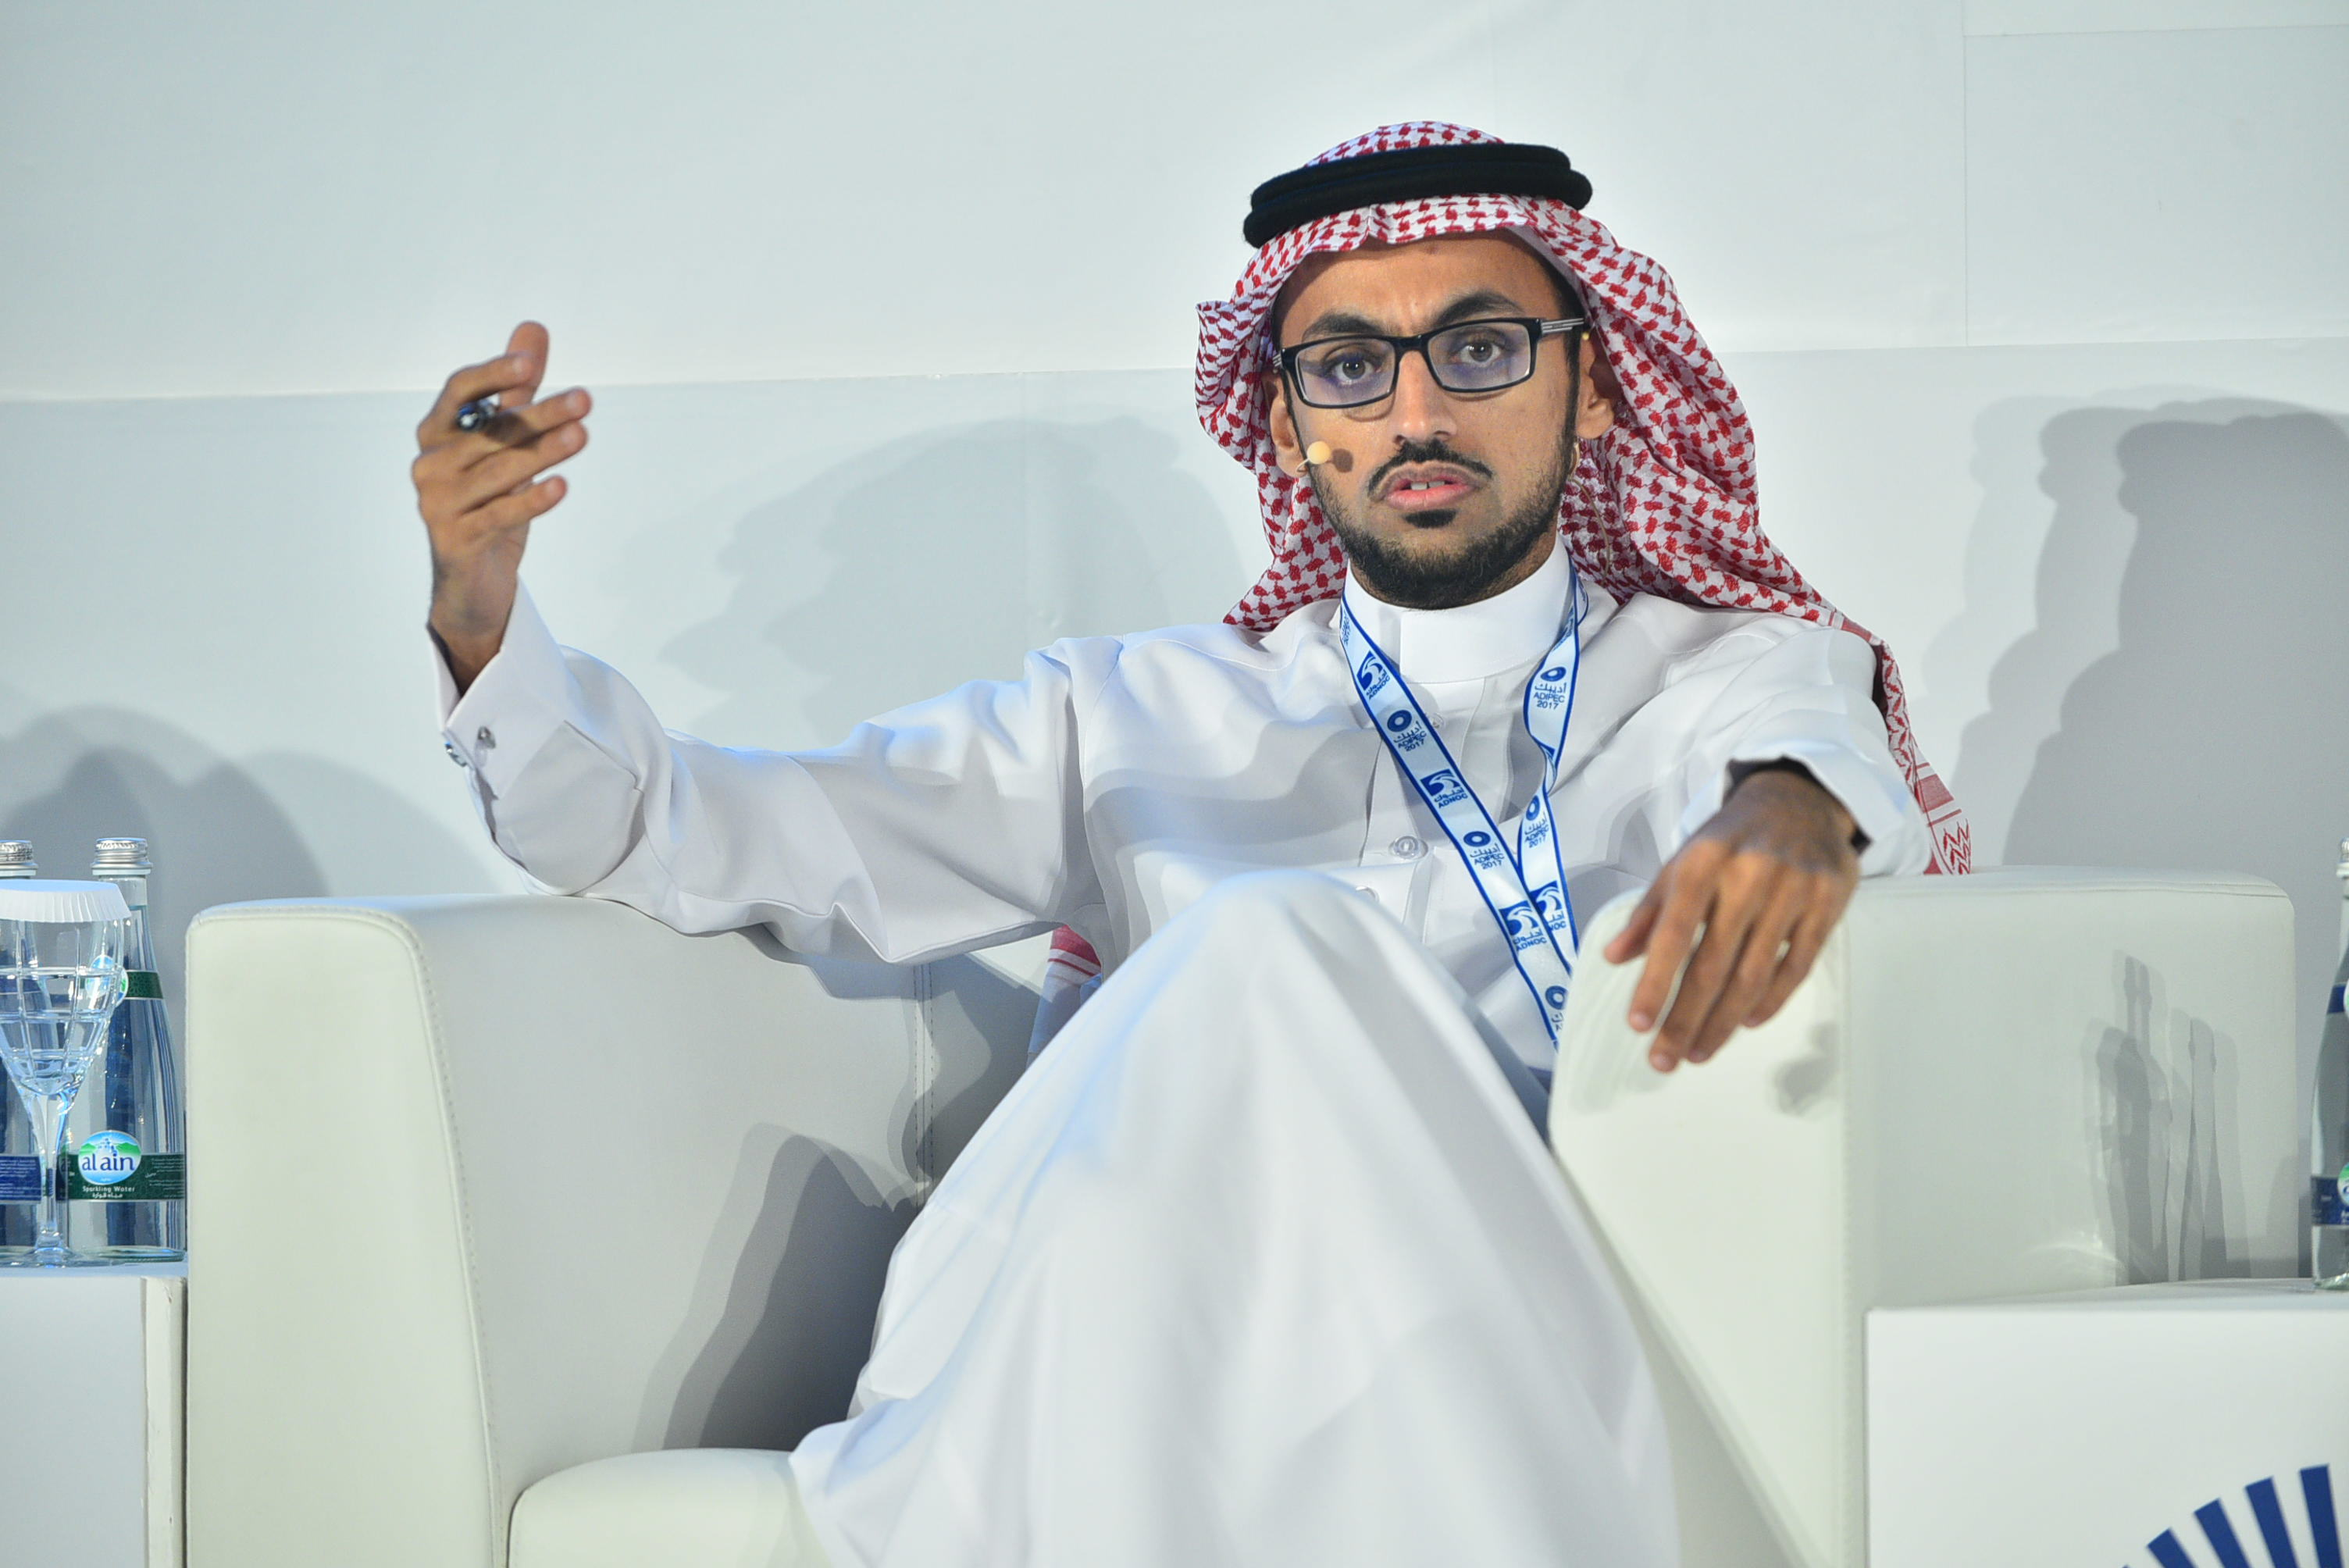 Ibrahim Al Shamrani, executive director of operations at Saudi Arabia's National Cyber Security Center